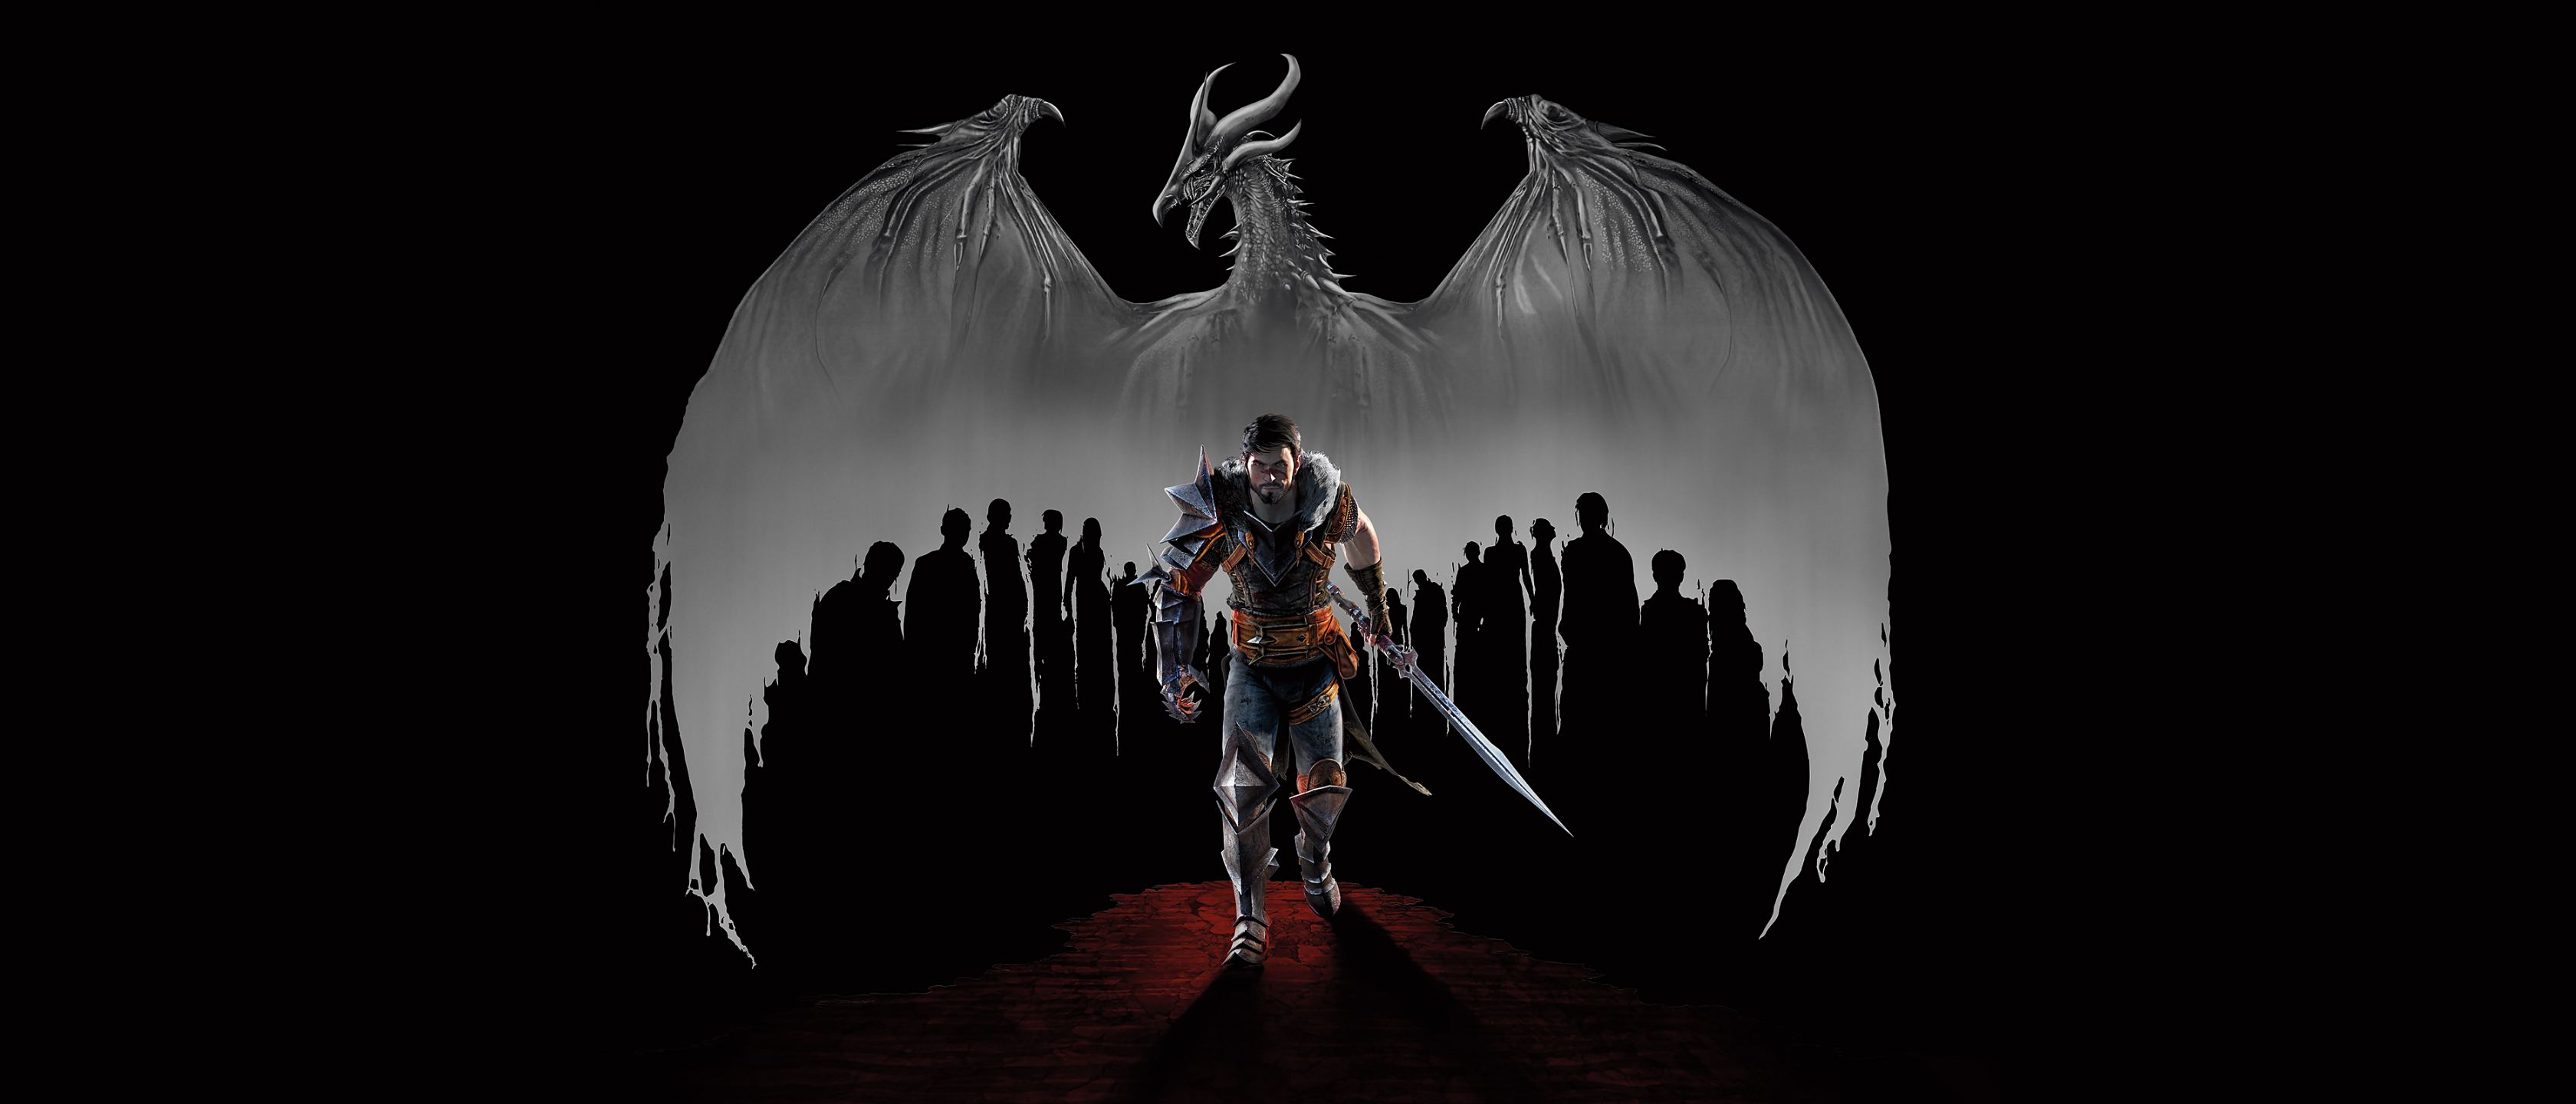 Dragon Age 2 Wallpaper, HD Games 4K Wallpapers, Images ...